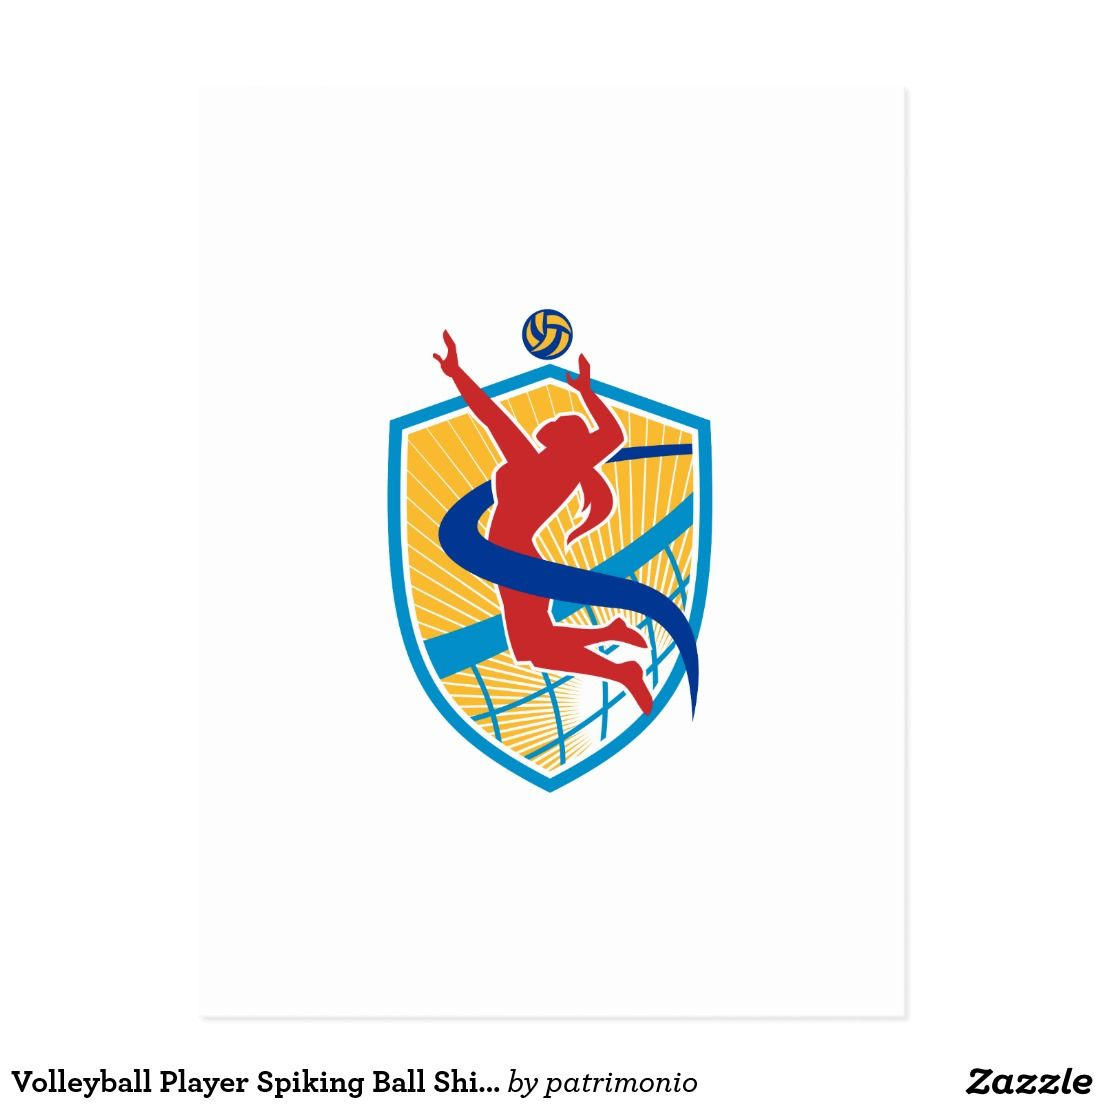 Volleyball Player Spiking Ball Shield Postcard Illustration Of A Volleyball Player Spiker Spiking Hitting Ball Set Inside Crest Shield With Net Done In Re Volei